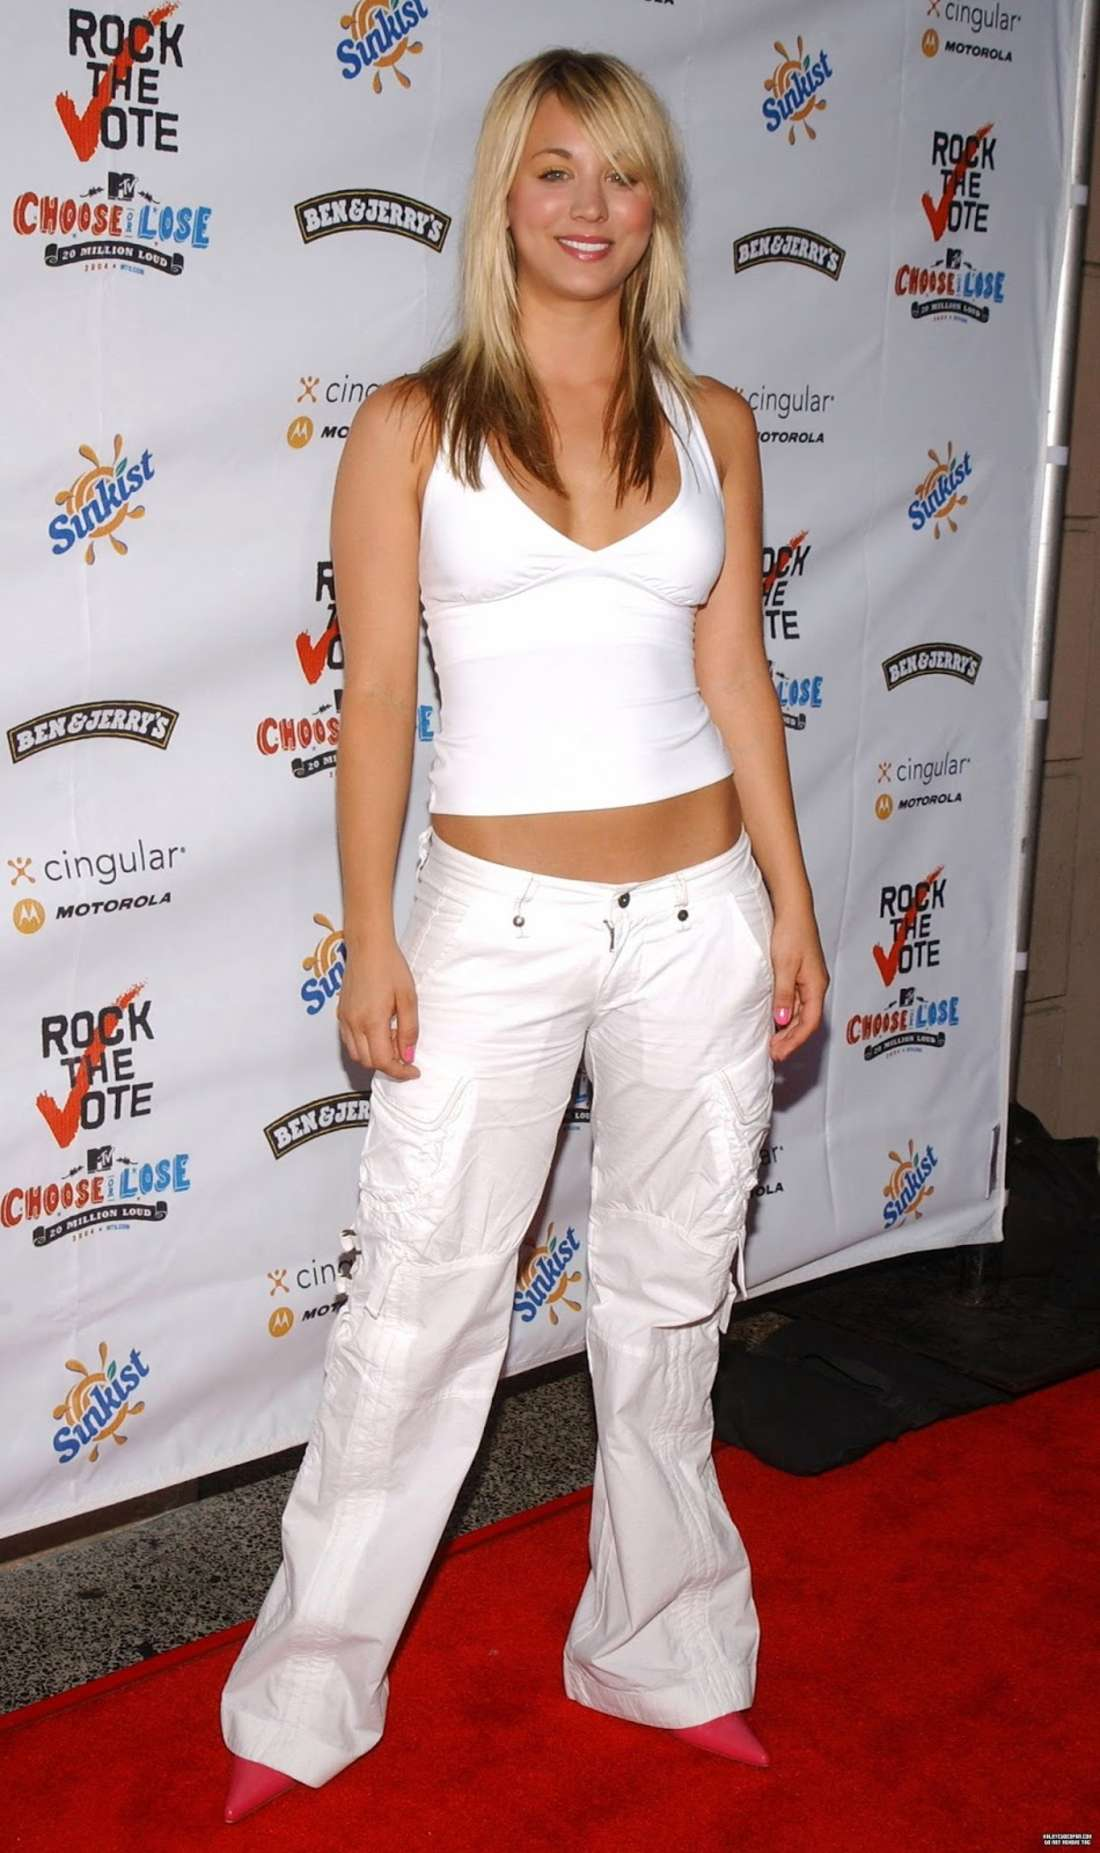 Kaley Cuoco 2016 : Kaley Cuoco: Rock The Vote National Bus Tour Concert 2004 -04